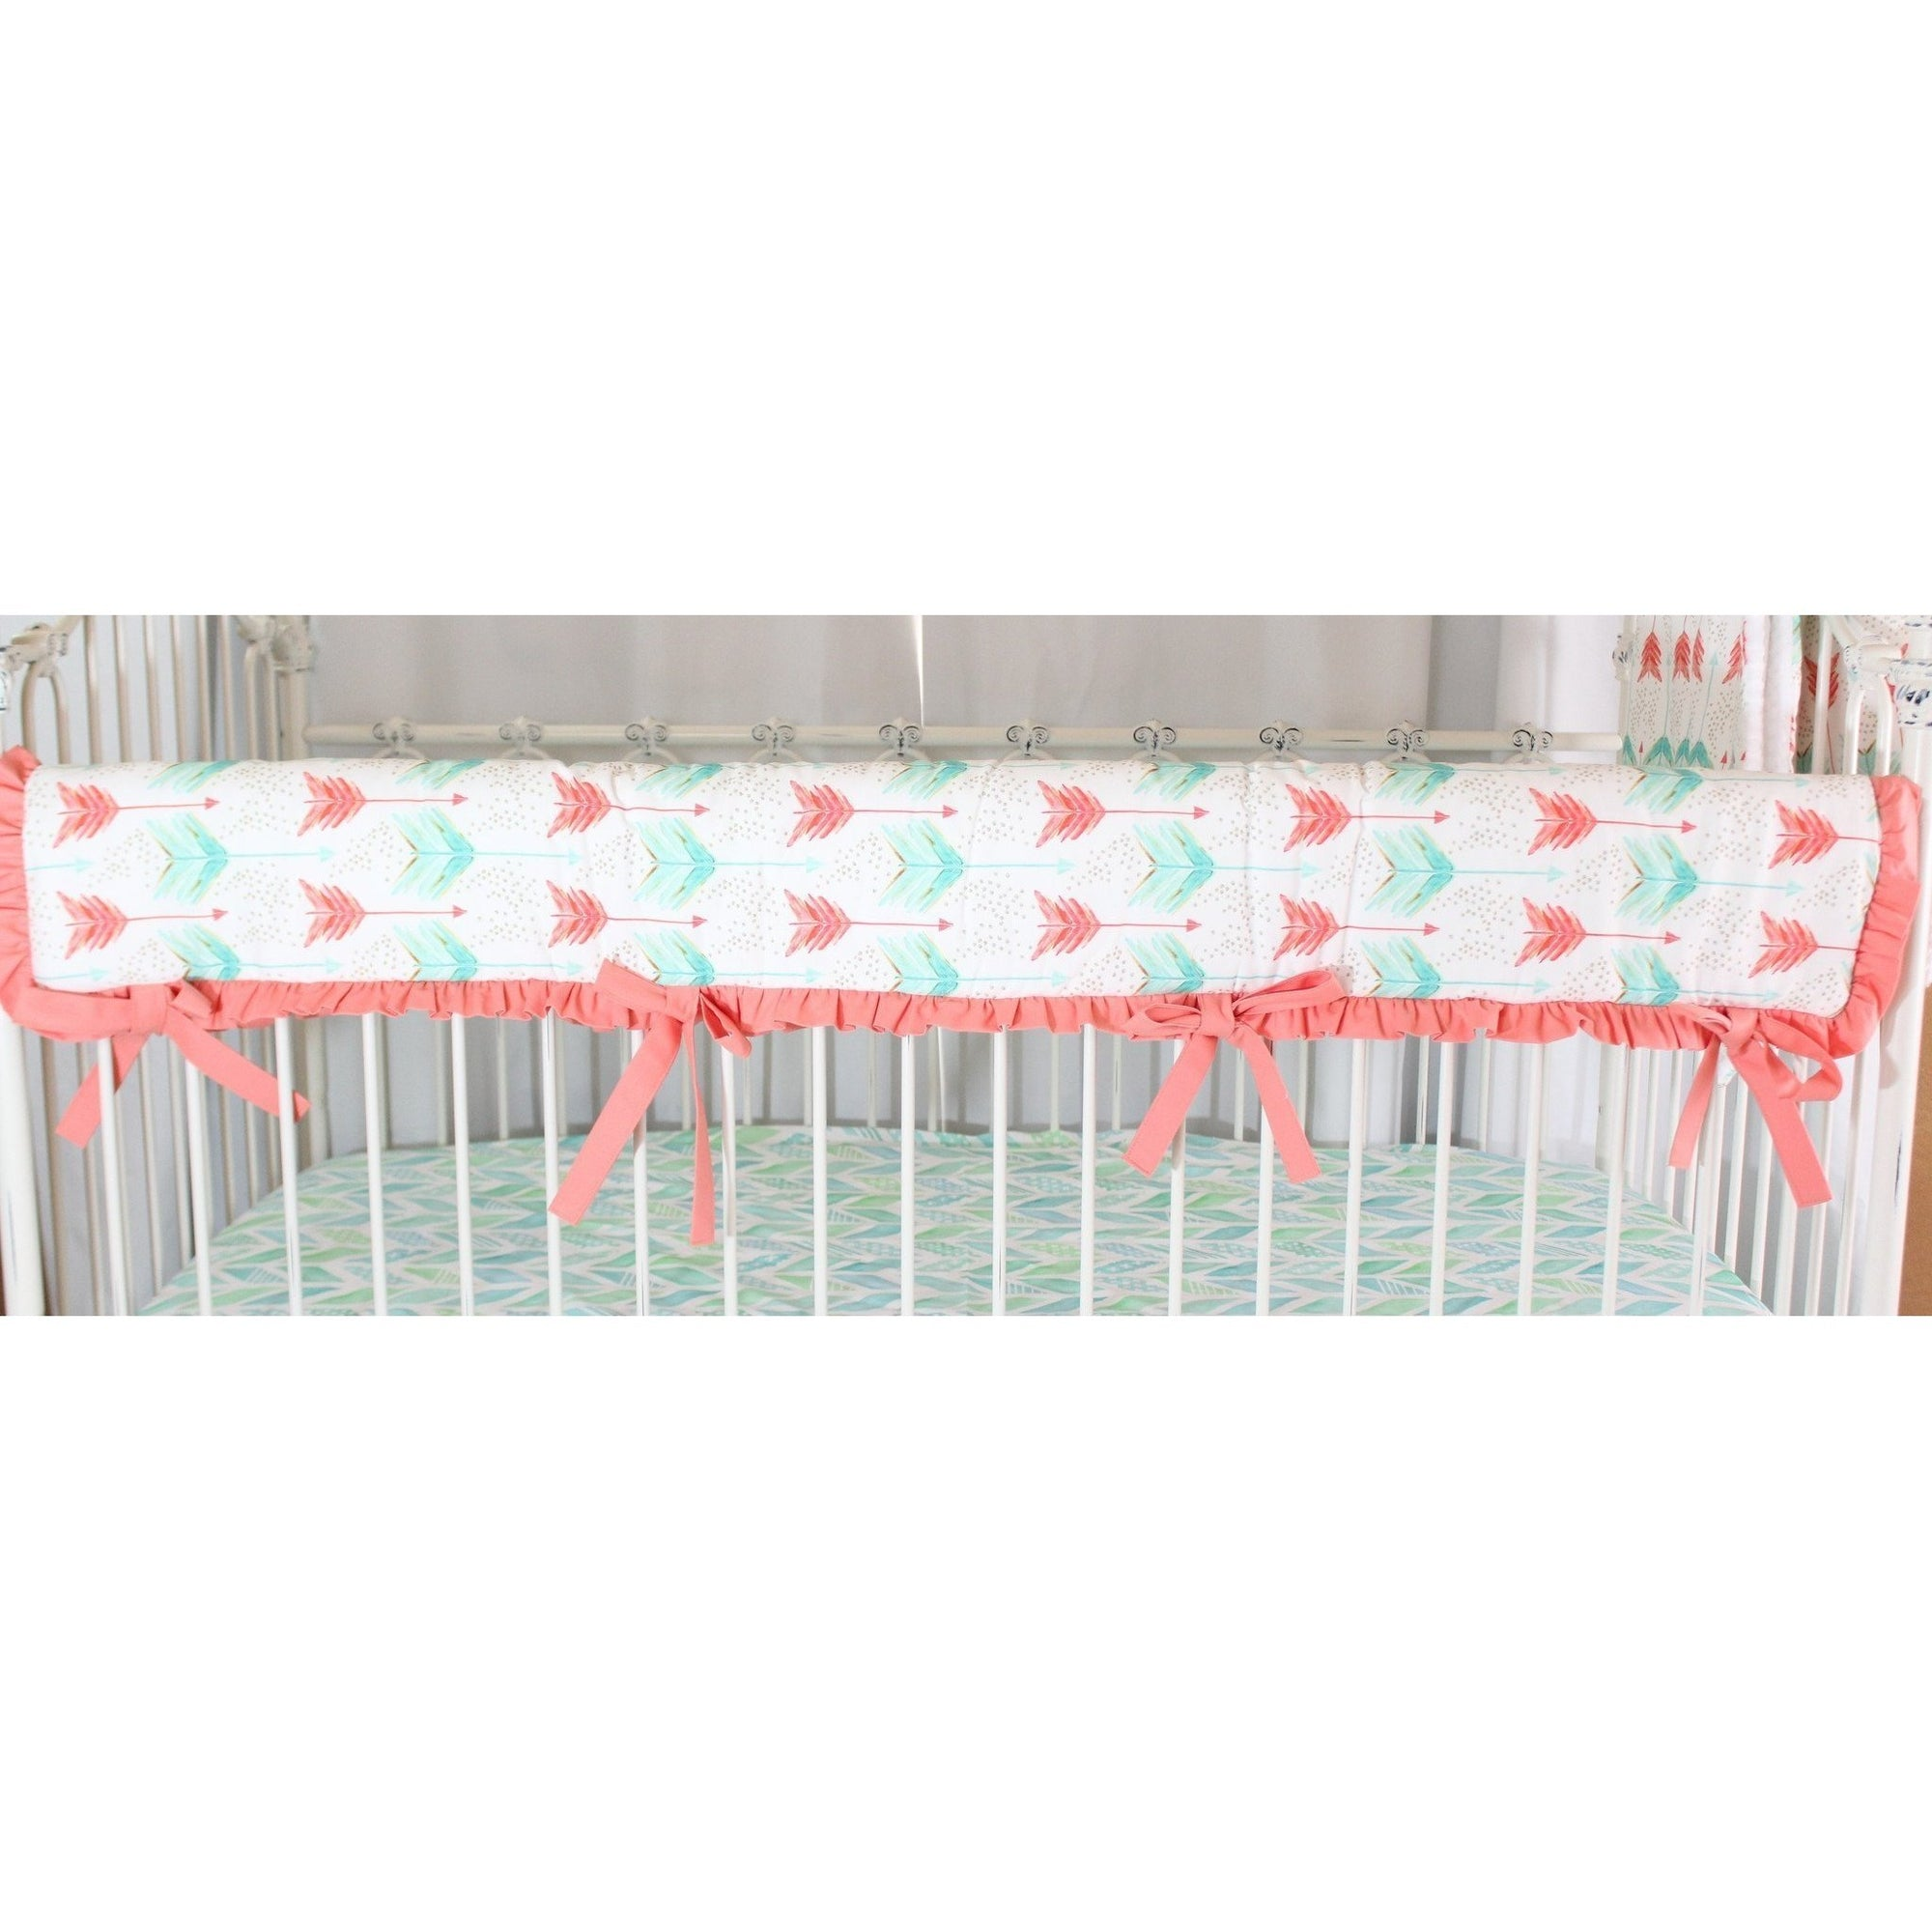 Rail Cover | Aqua and Coral Watercolor Herringbone Baby Bedding-Crib Rail Cover-Jack and Jill Boutique